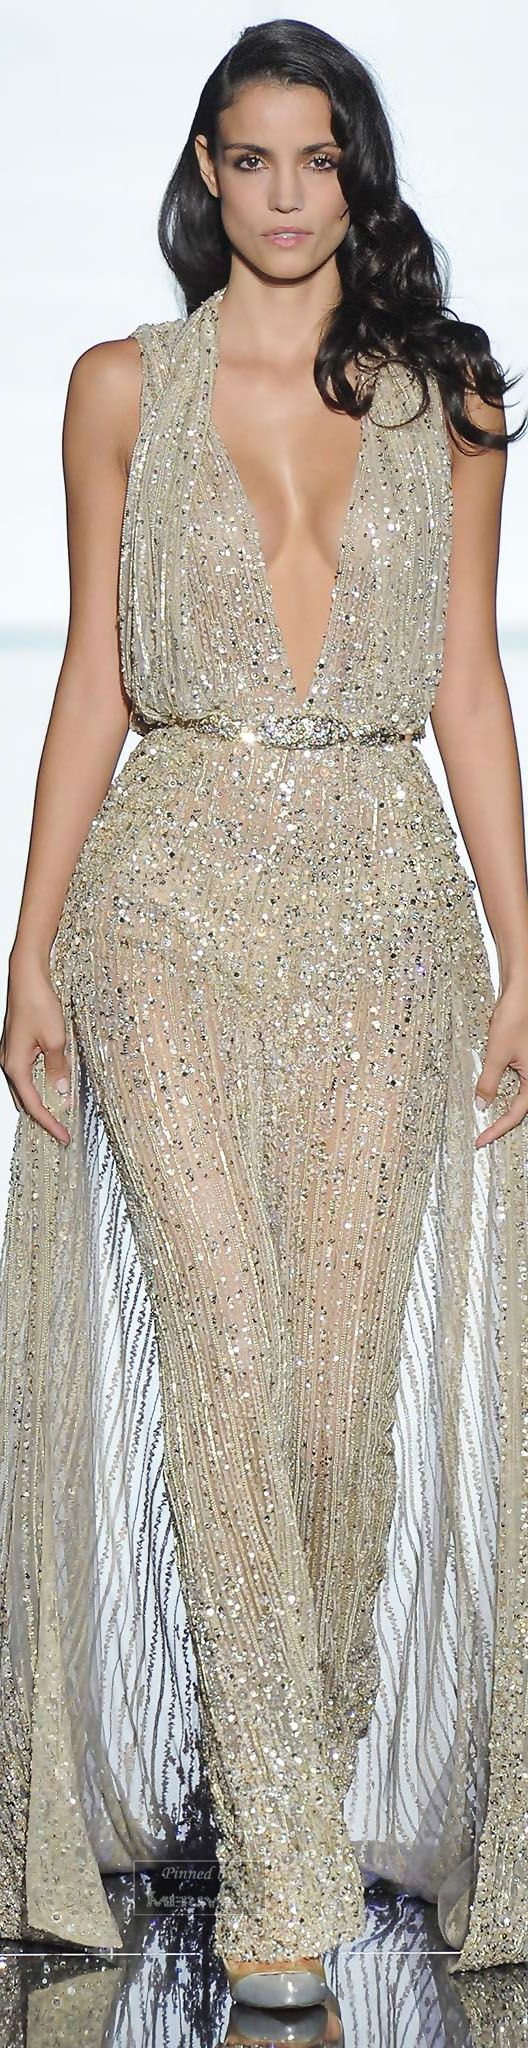 Zuhair Murad.Spring 2015 Couture. I can see Jennifer Lopez in this. It still shows a lot of skin, but it's actually more covered up than she usually wears. I wish she would try to dress a bit less sexy. You can still show off your amazing body without actually being practically naked.